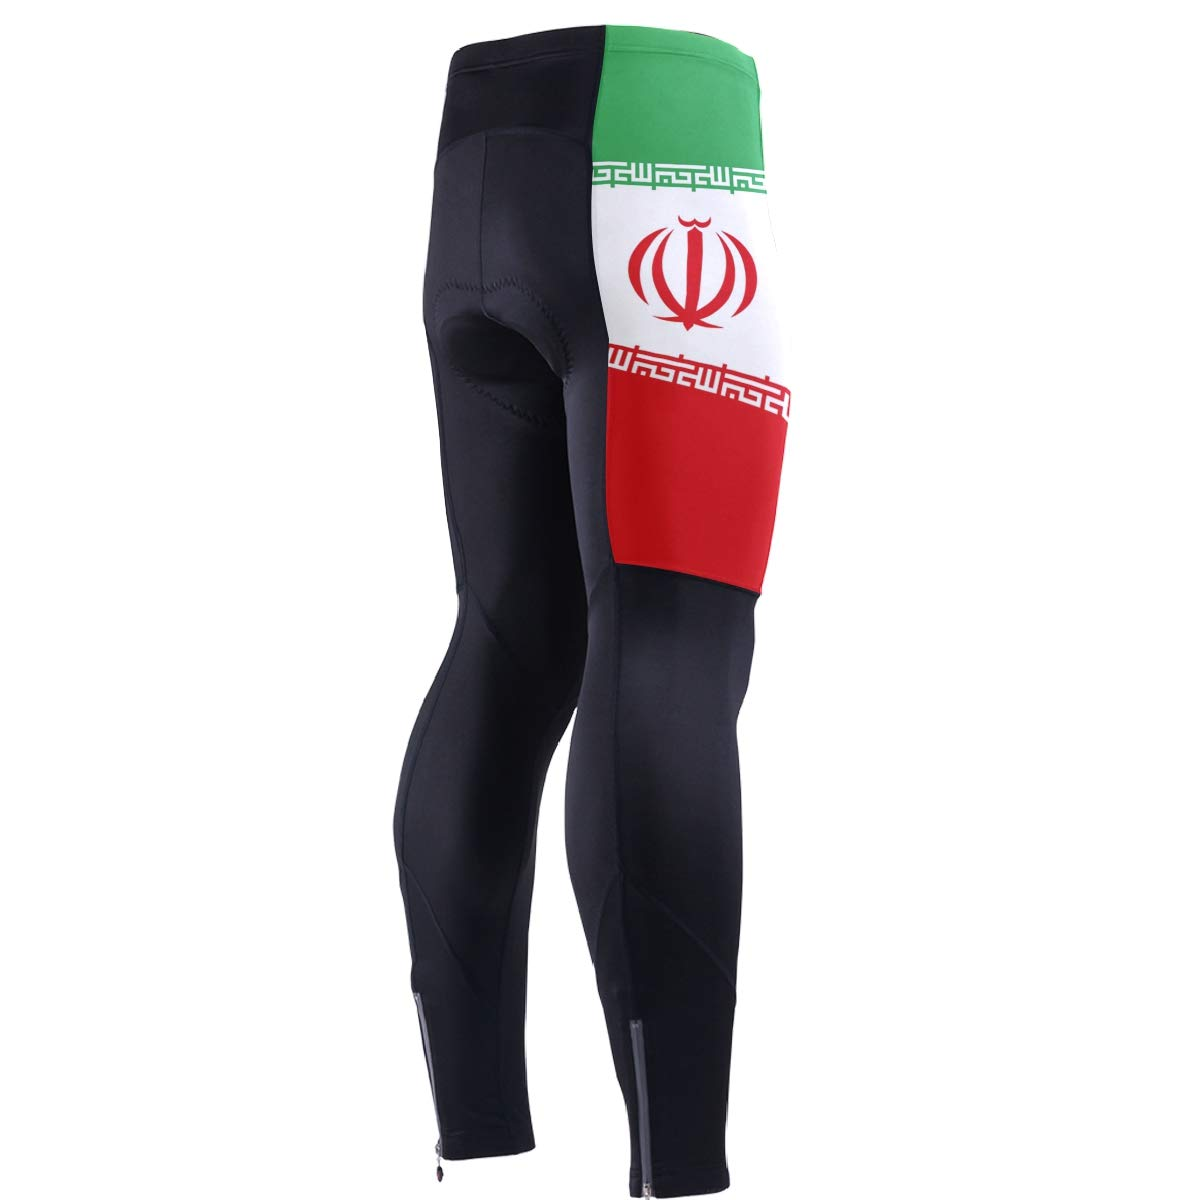 CHINEIN Men's Cycling Jersey Long Sleeve with 3 Rear Pockets Pants Iran Flag